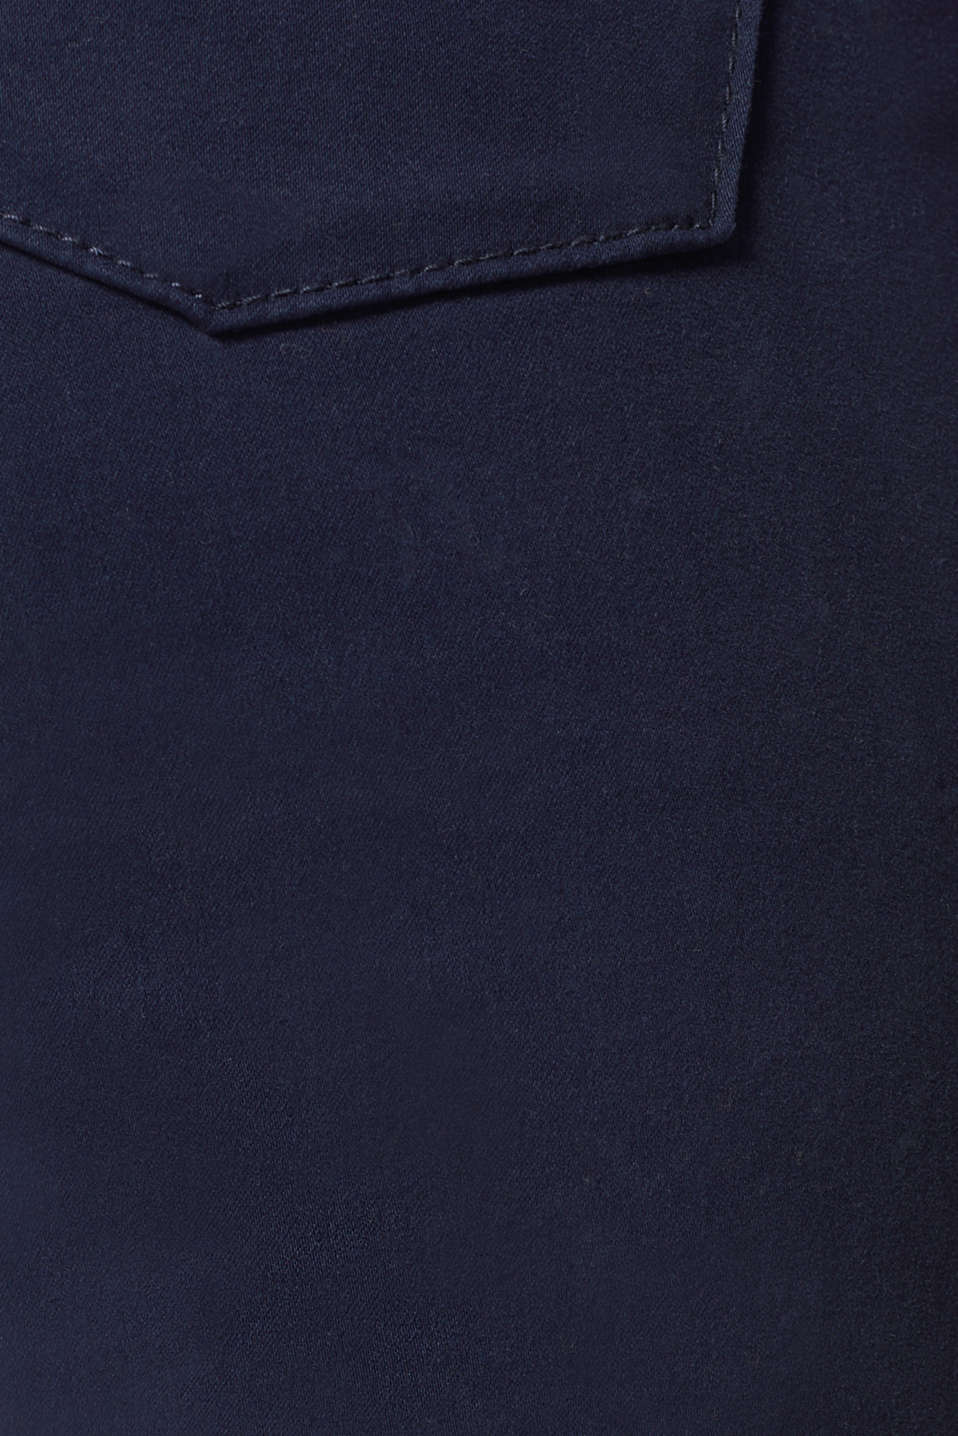 Soft, high-waisted stretch trousers, NAVY, detail image number 4